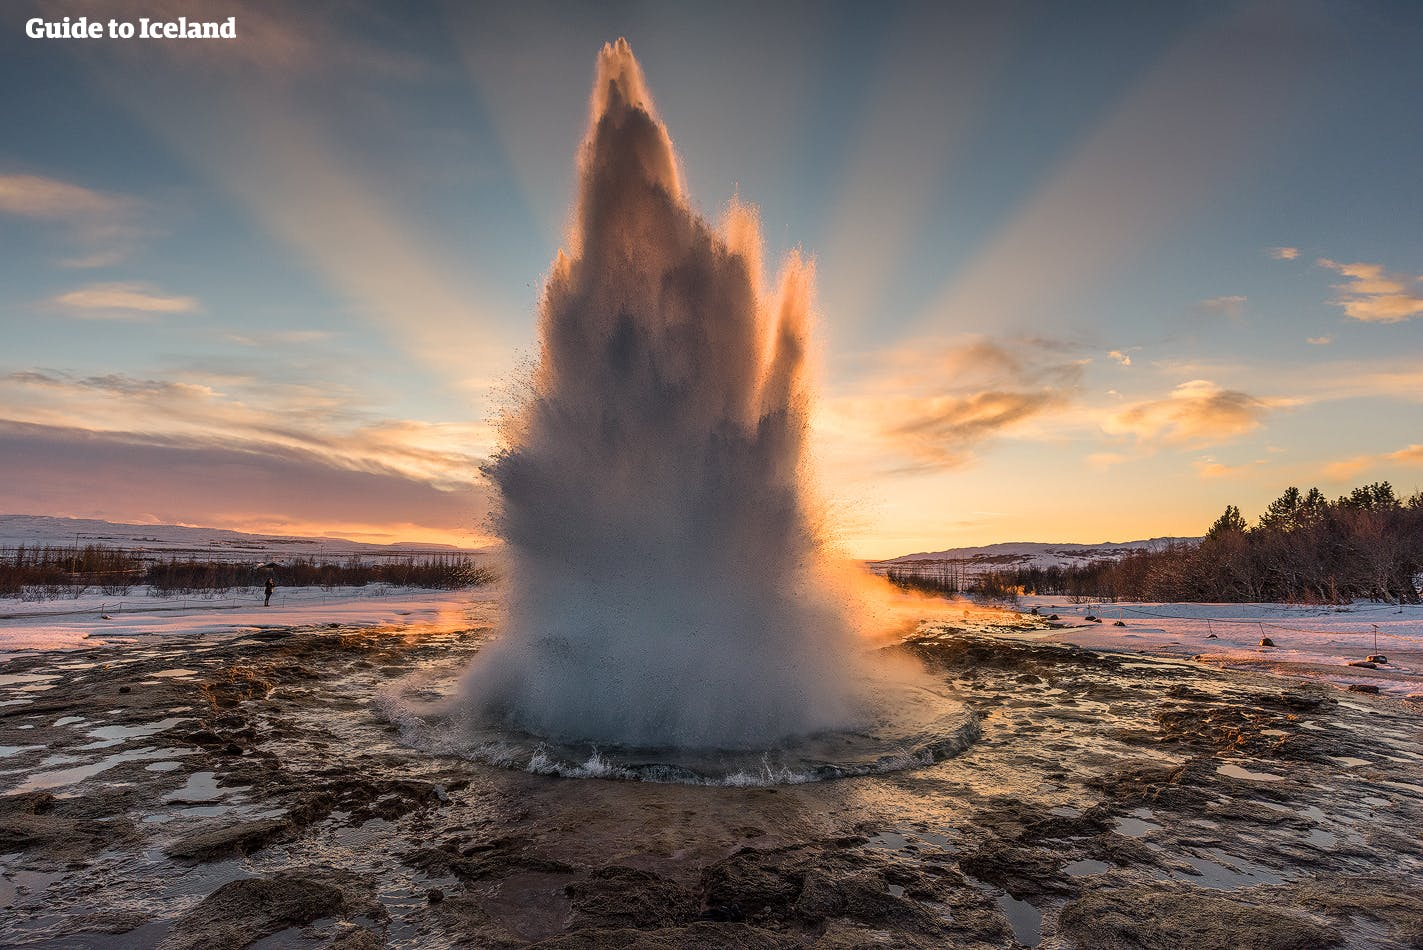 Visit the Golden Circle to see the magnificent geyser Strokkur erupt.